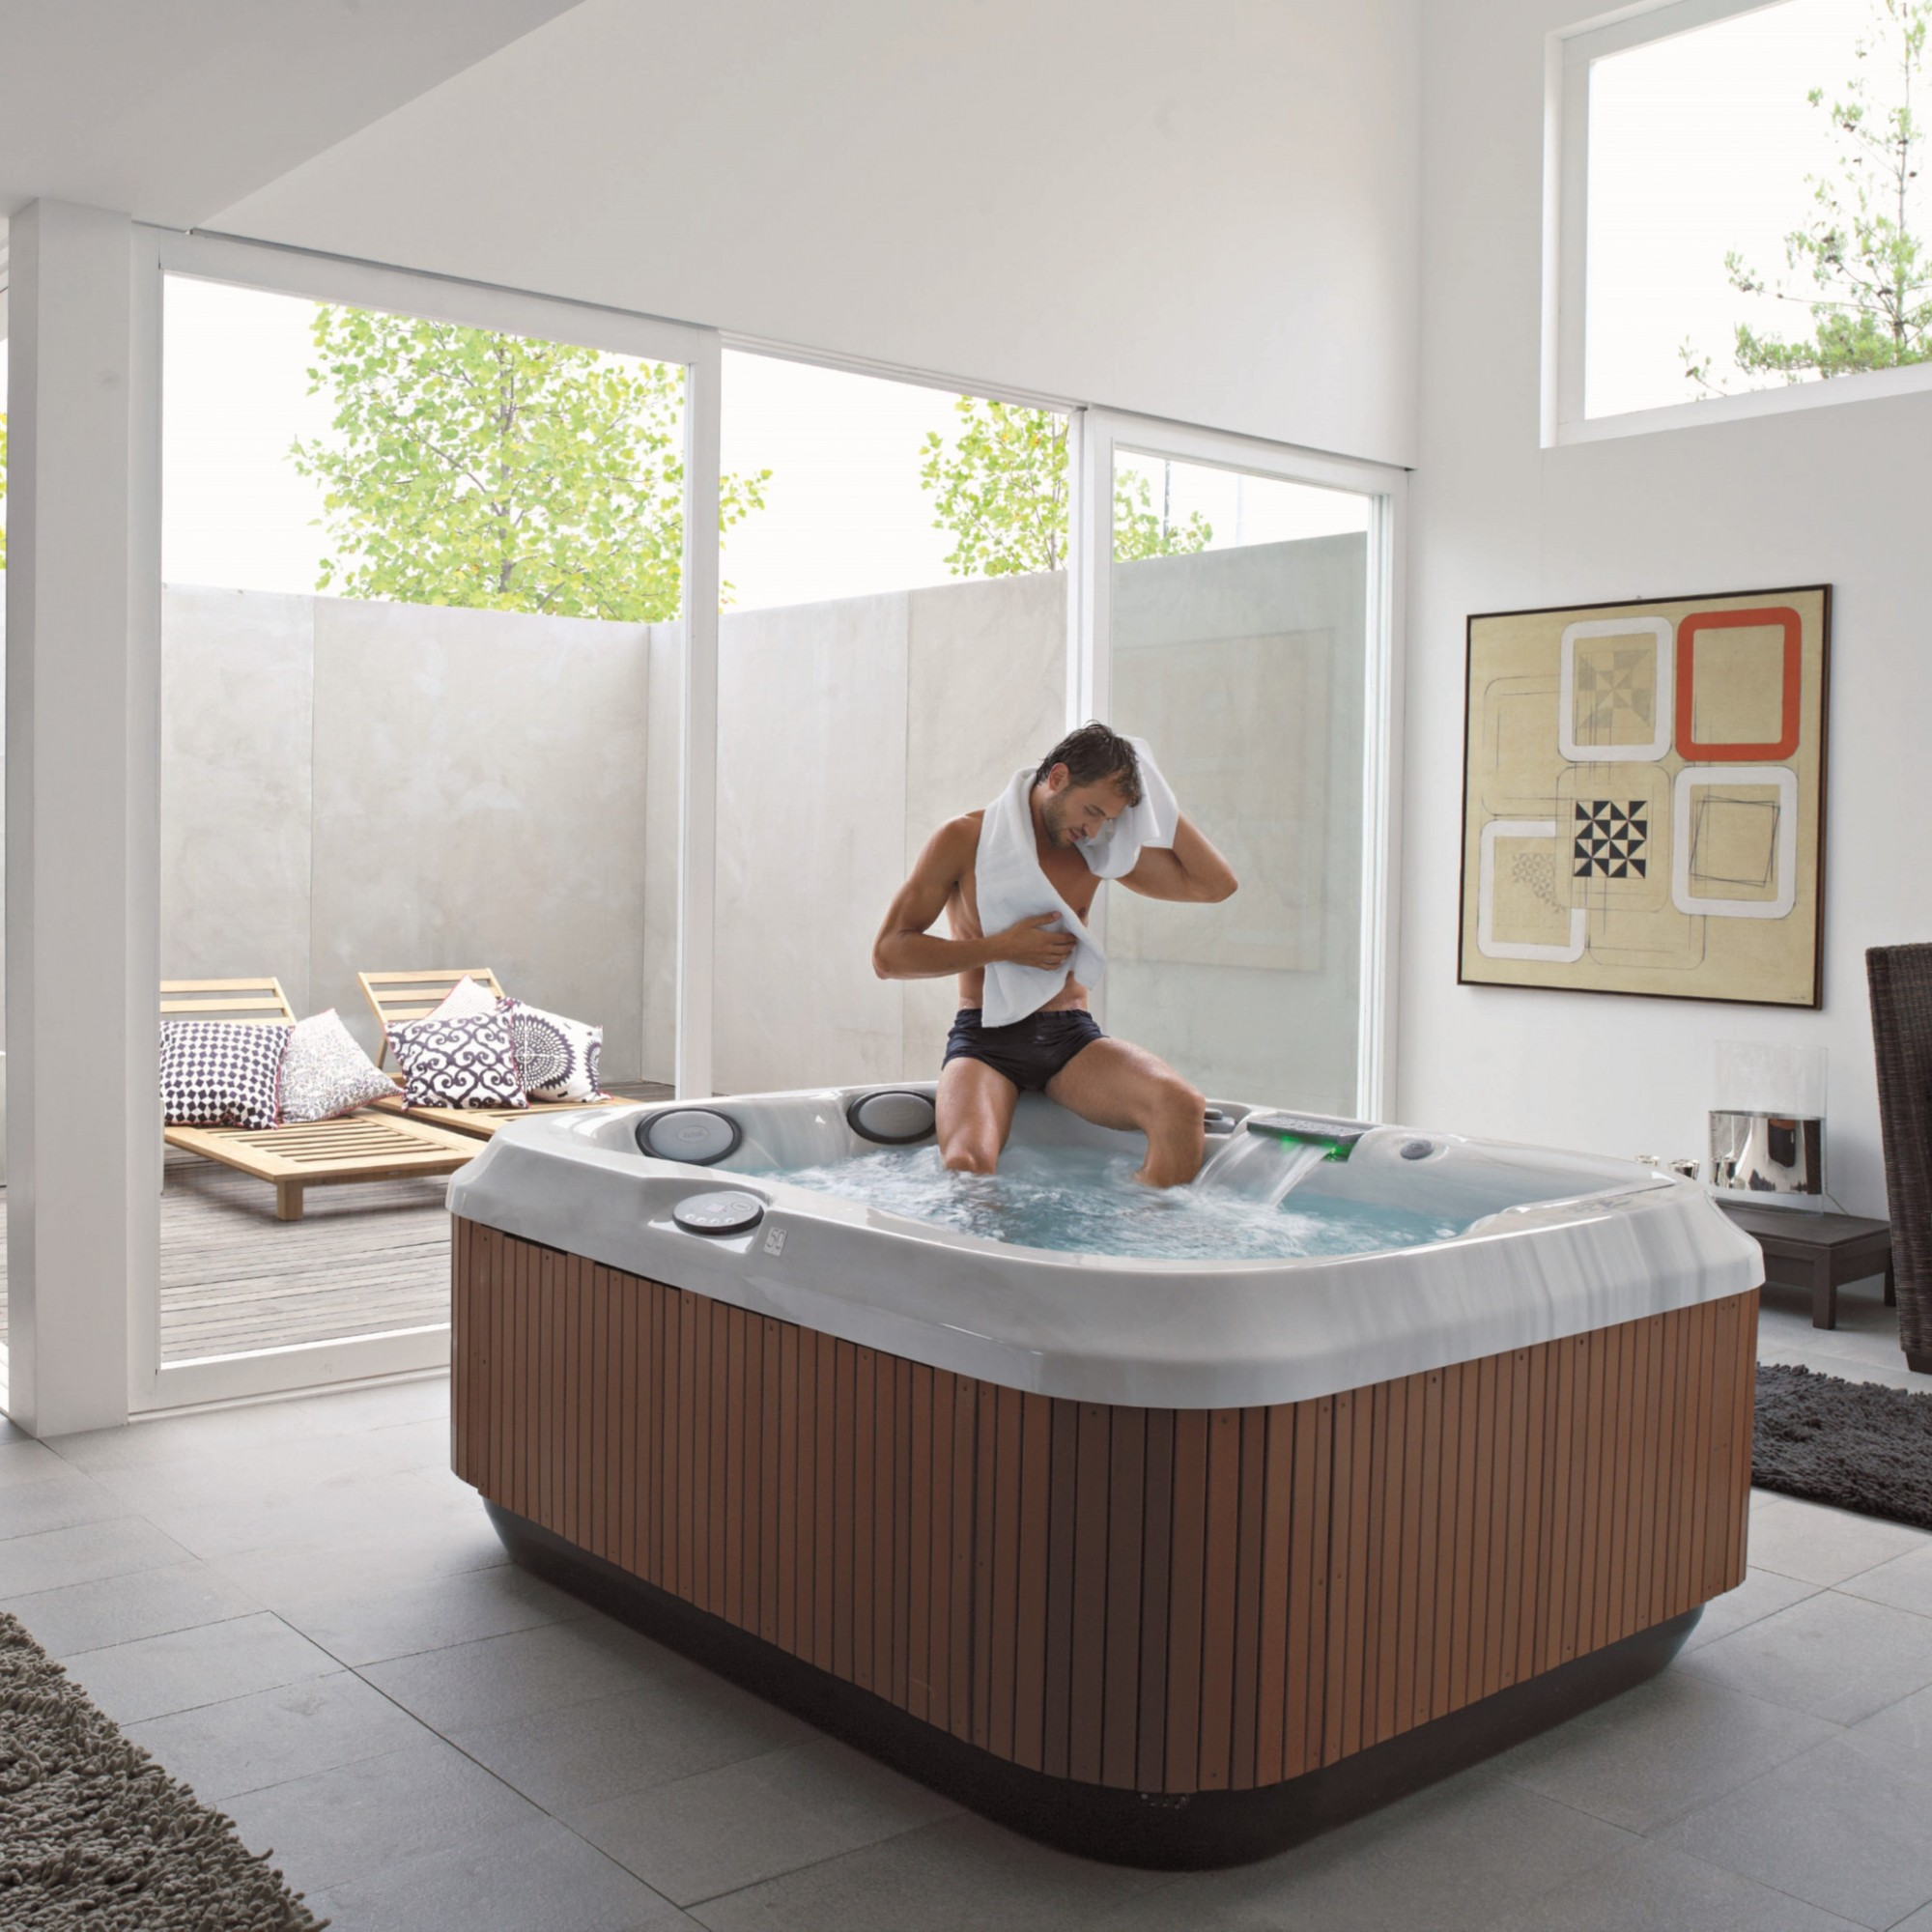 spa jacuzzi orange